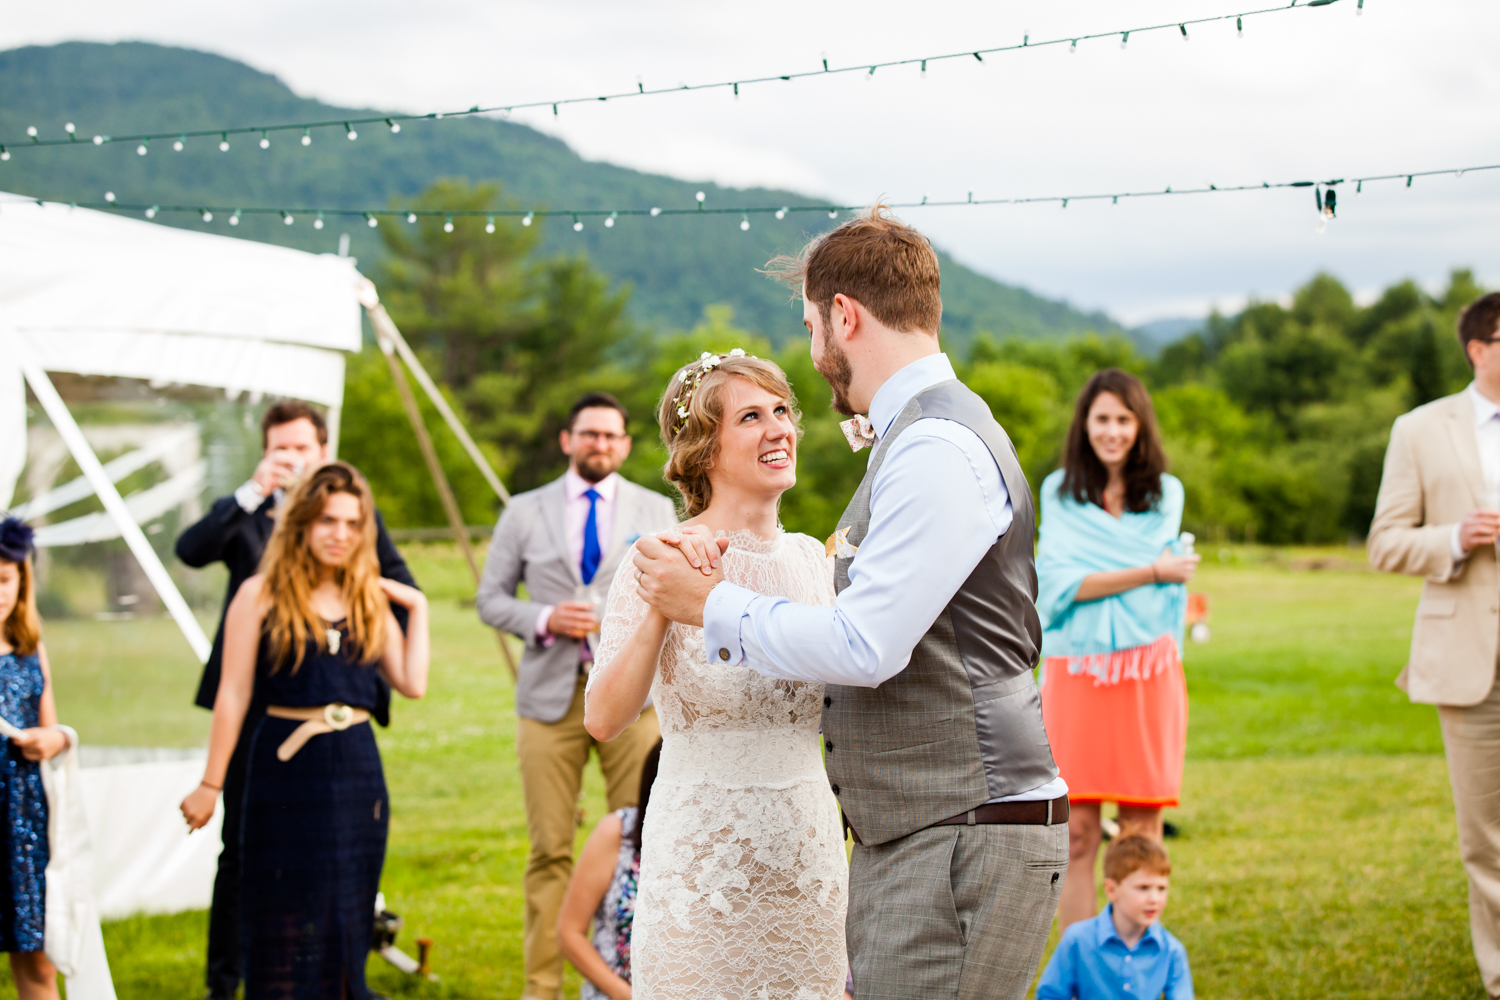 Bride and groom share a first dance